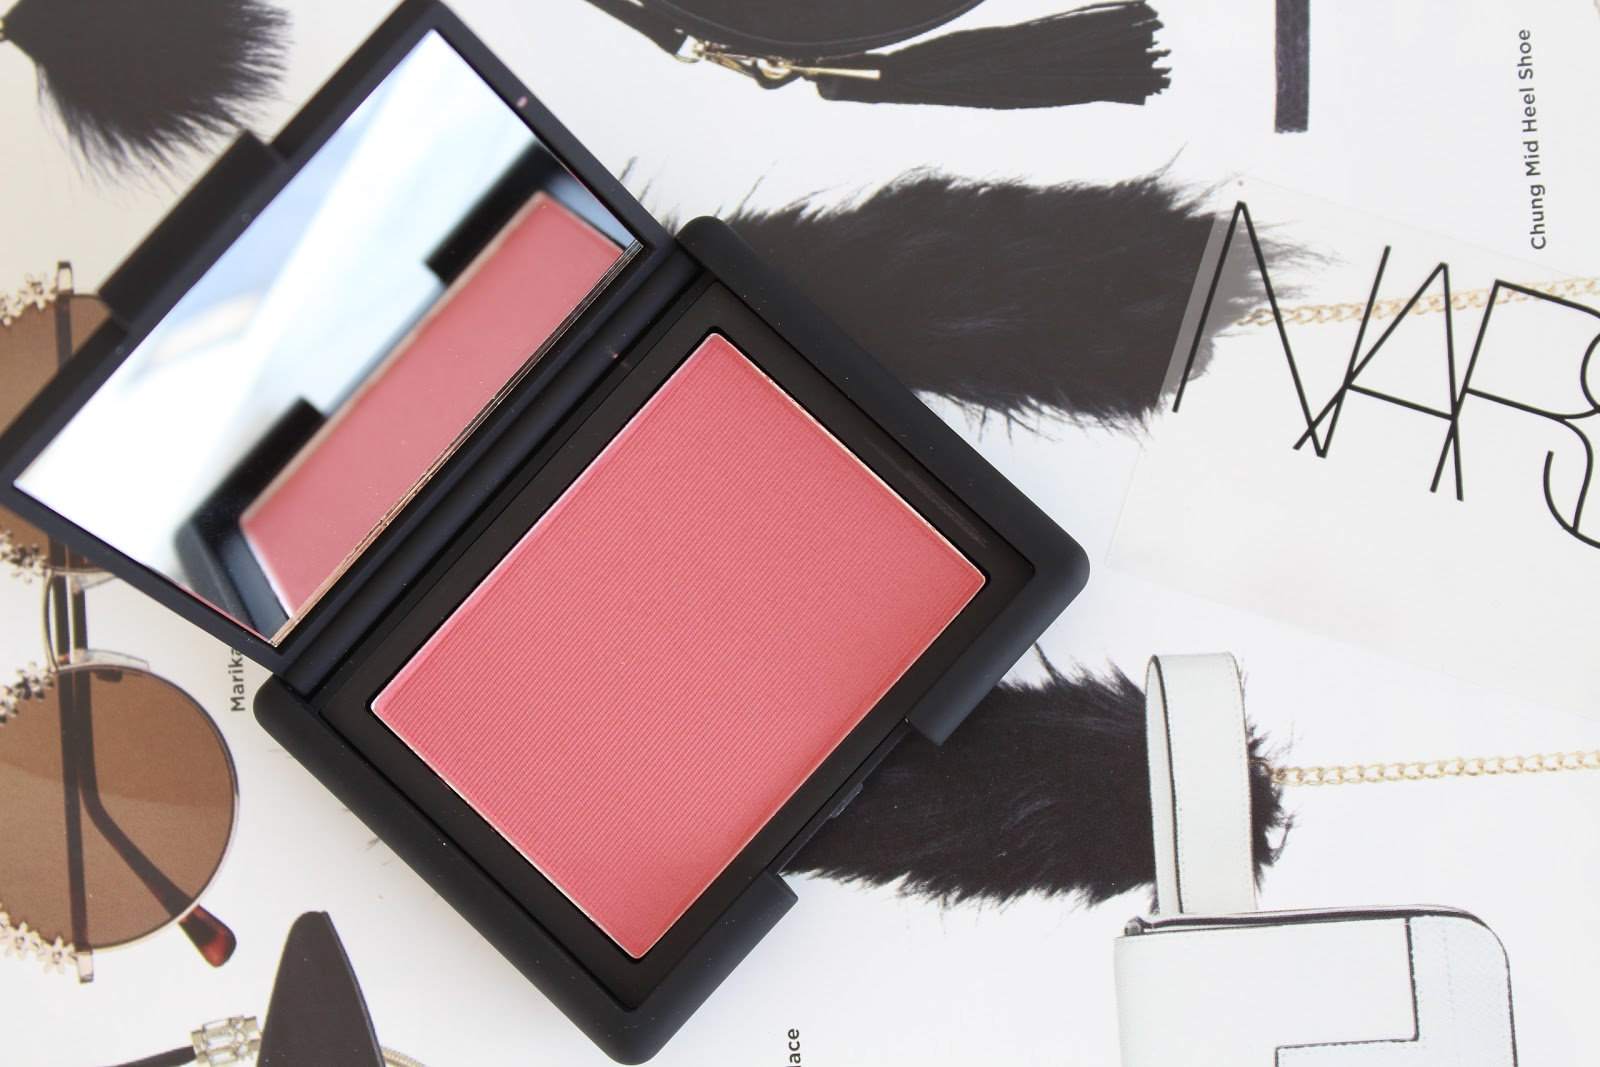 NARS Amour blusher swatches and review